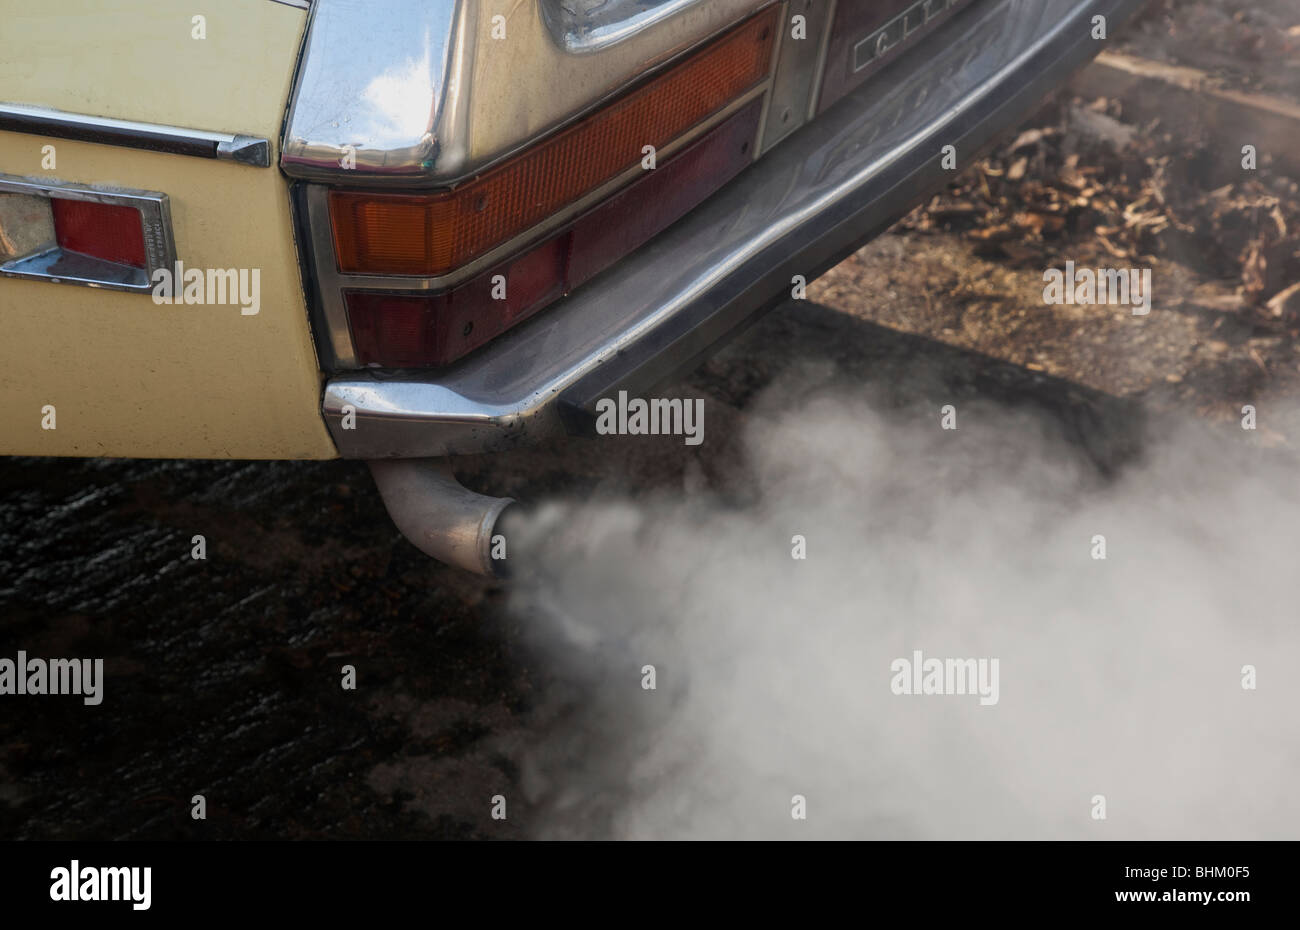 Car exhaust pollution - Stock Image